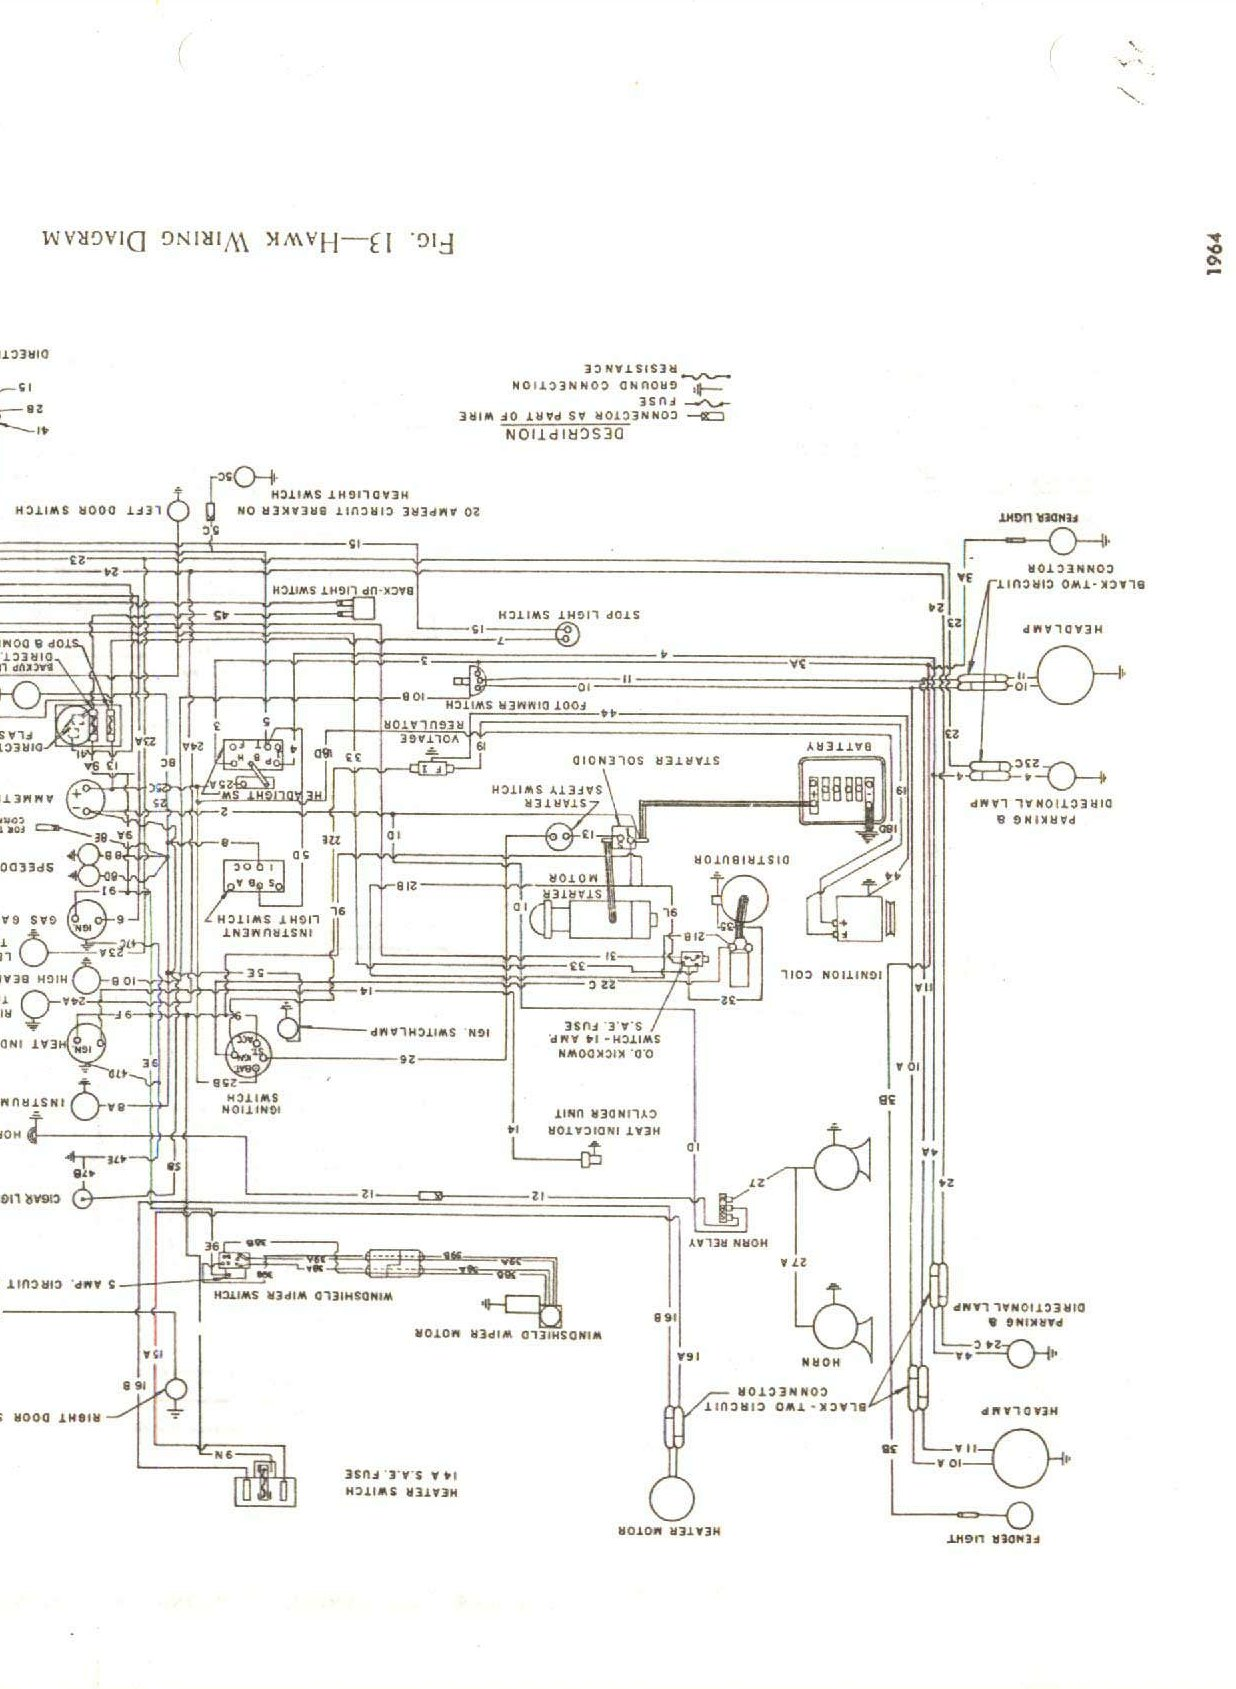 wiring diagram for 1963 64 studebaker hawk